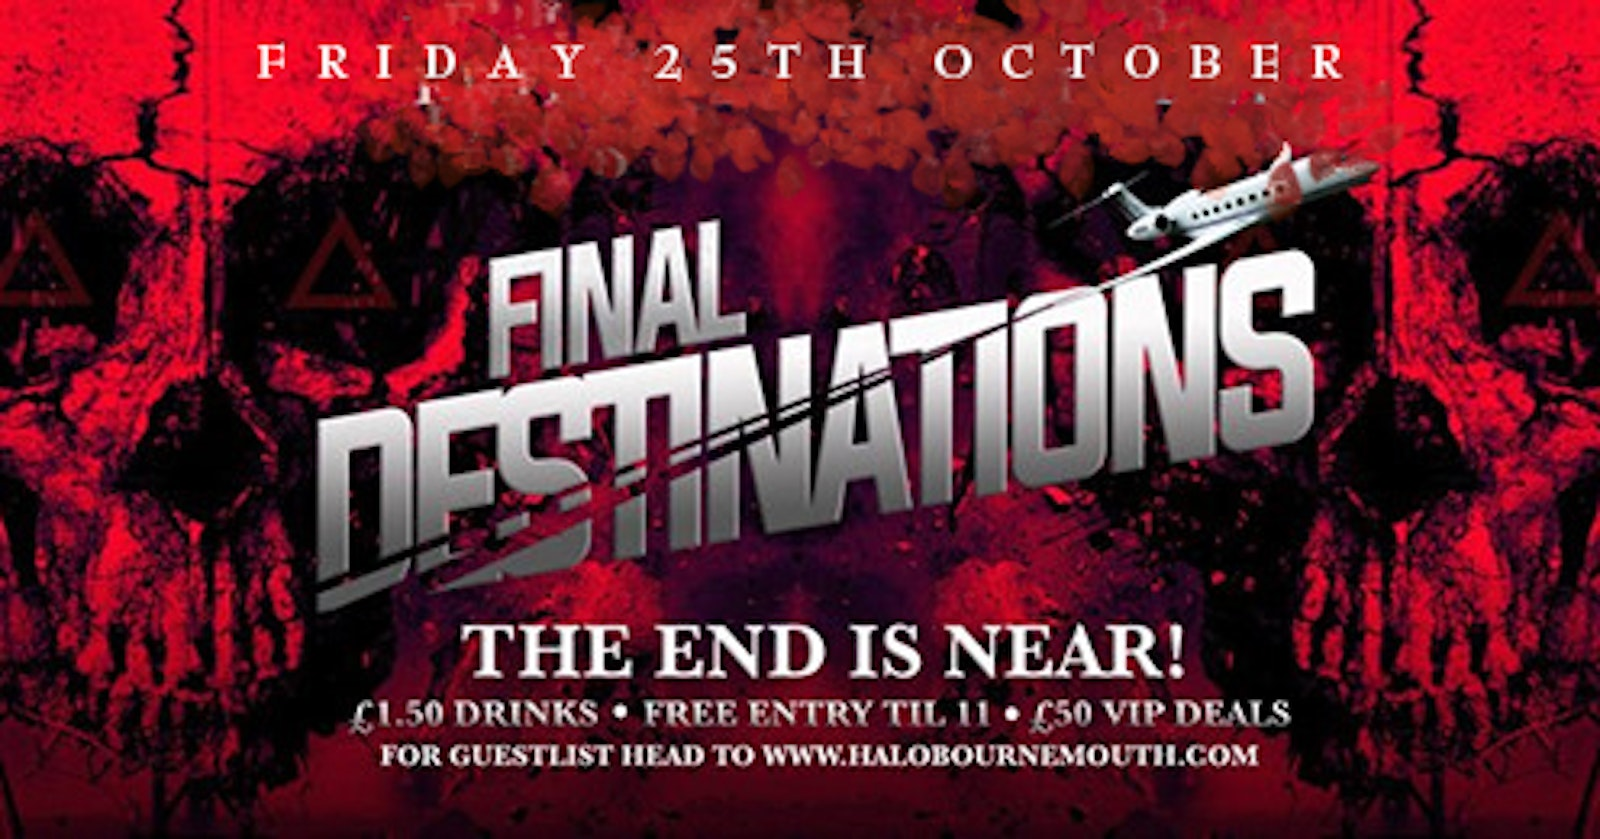 Final Destinations: Halo-Ween Special